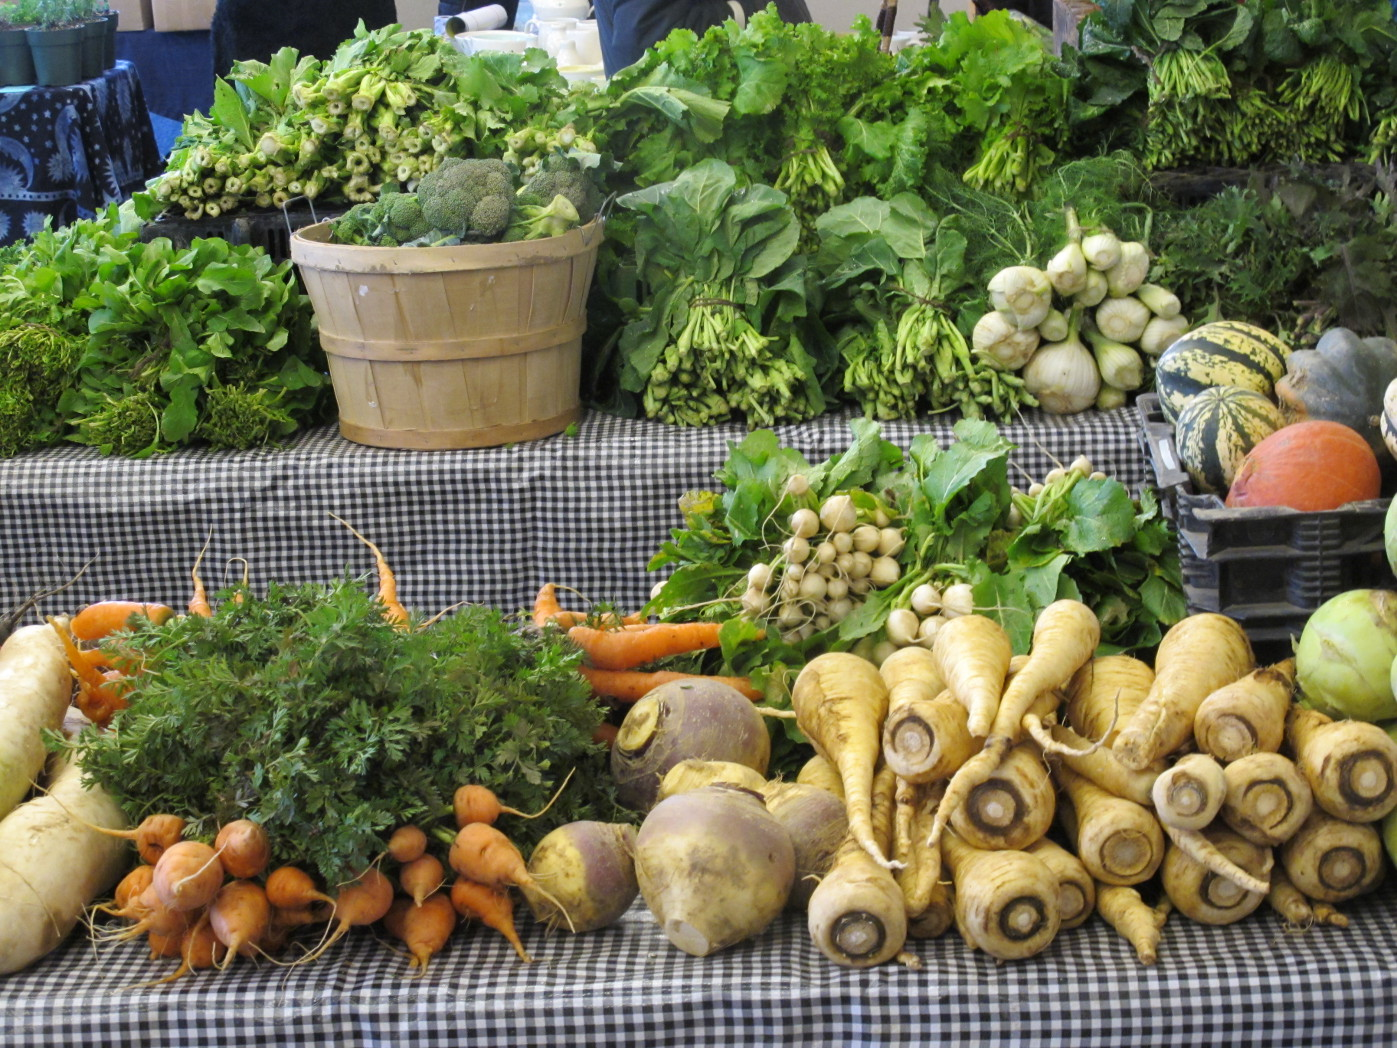 Best Places to Buy Produce in the Hudson Valley